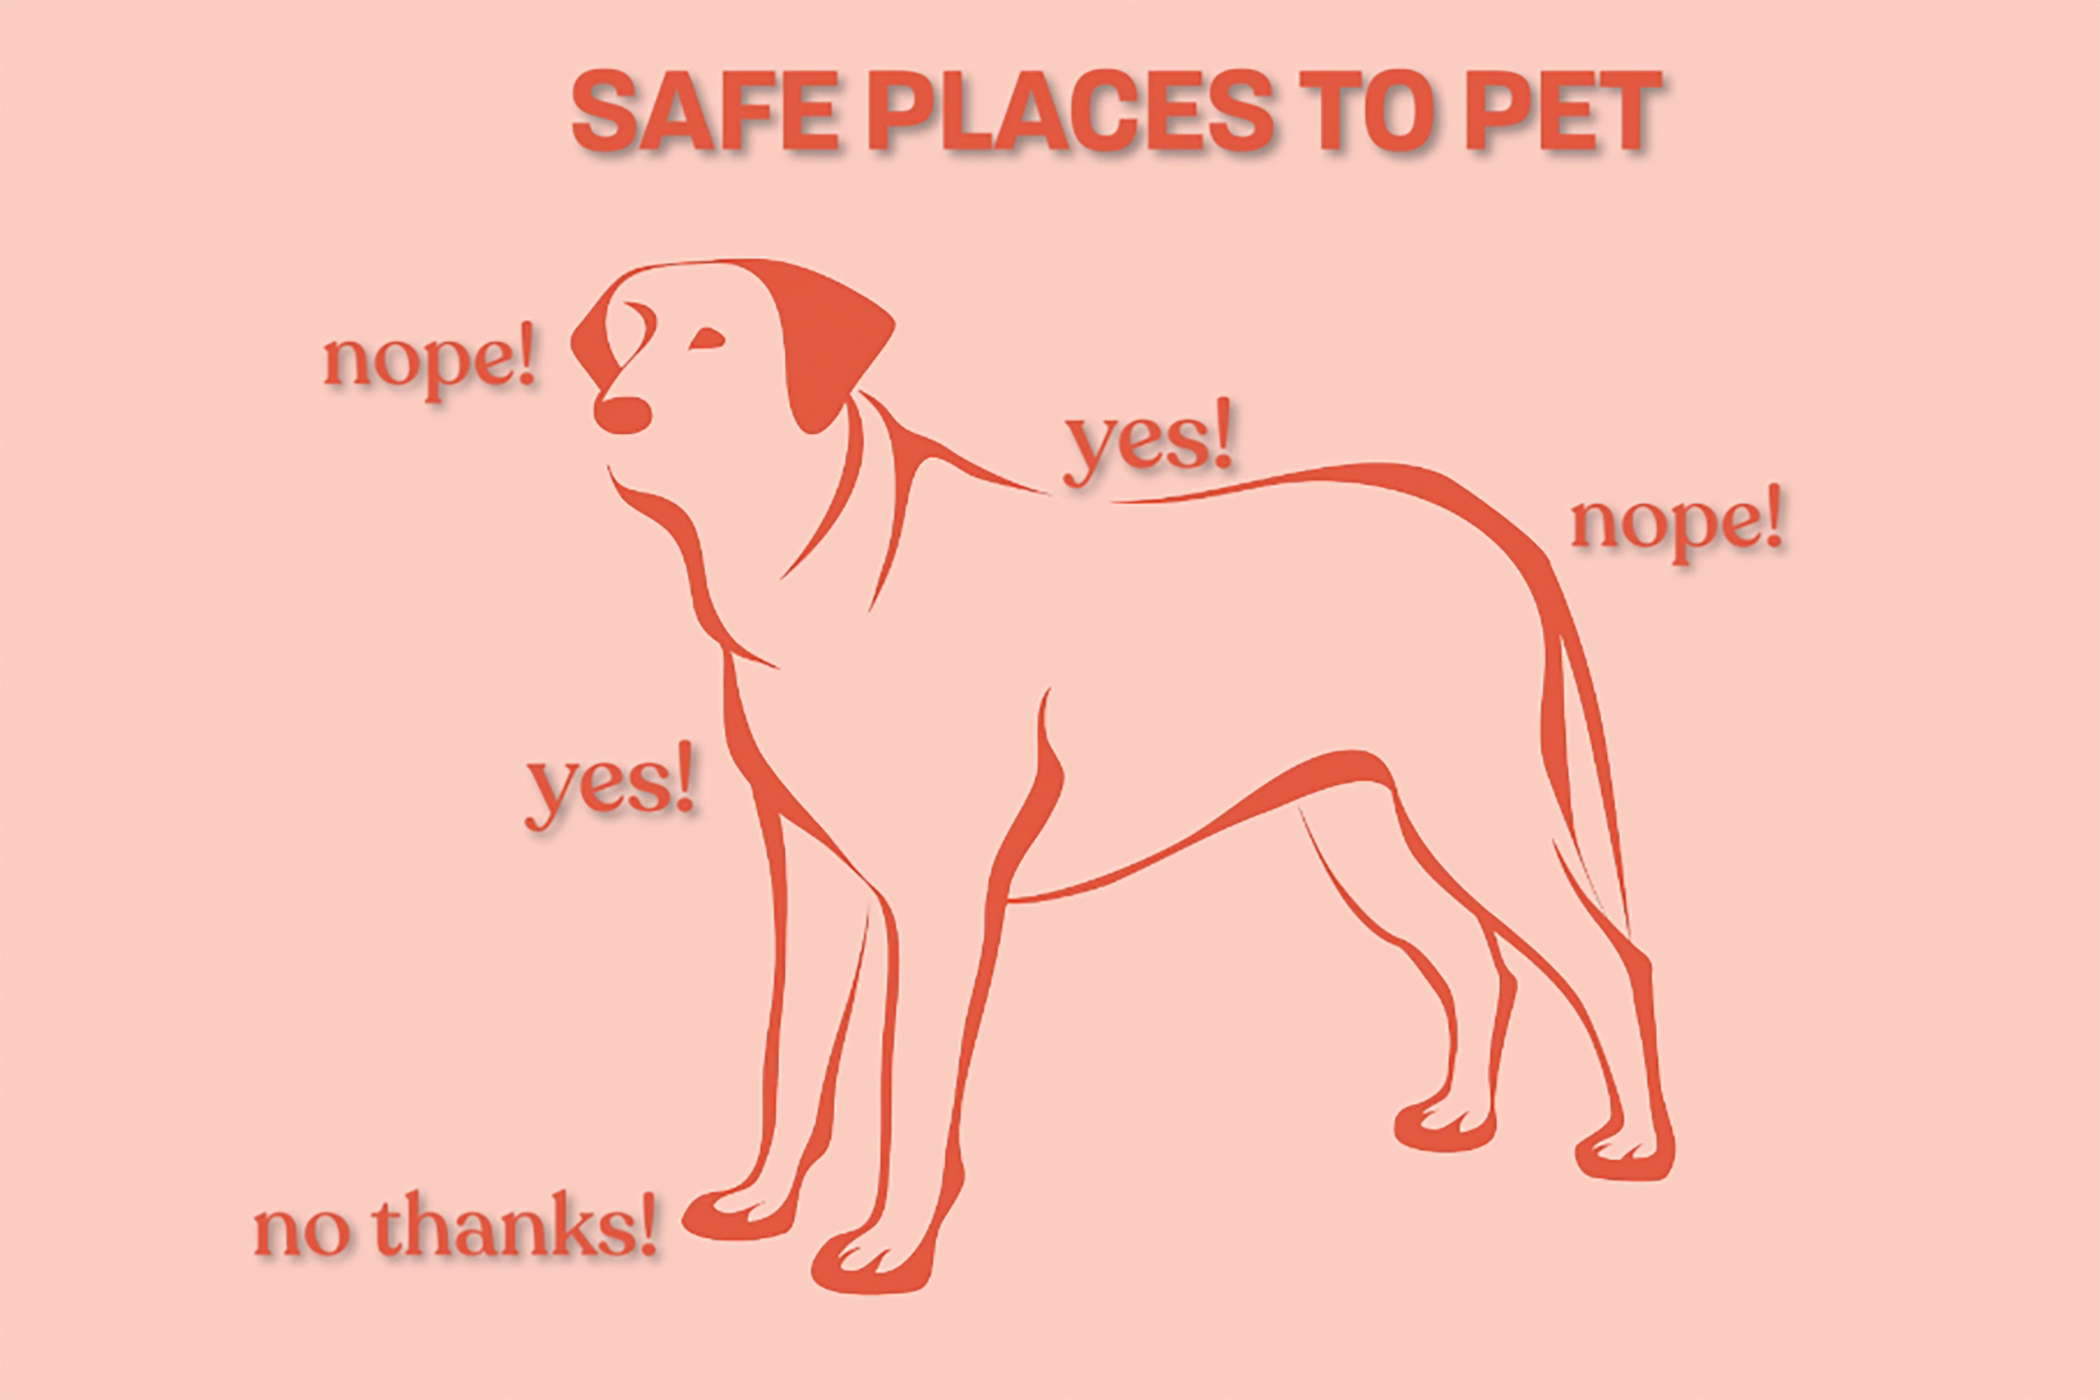 where to pet a dog illustration